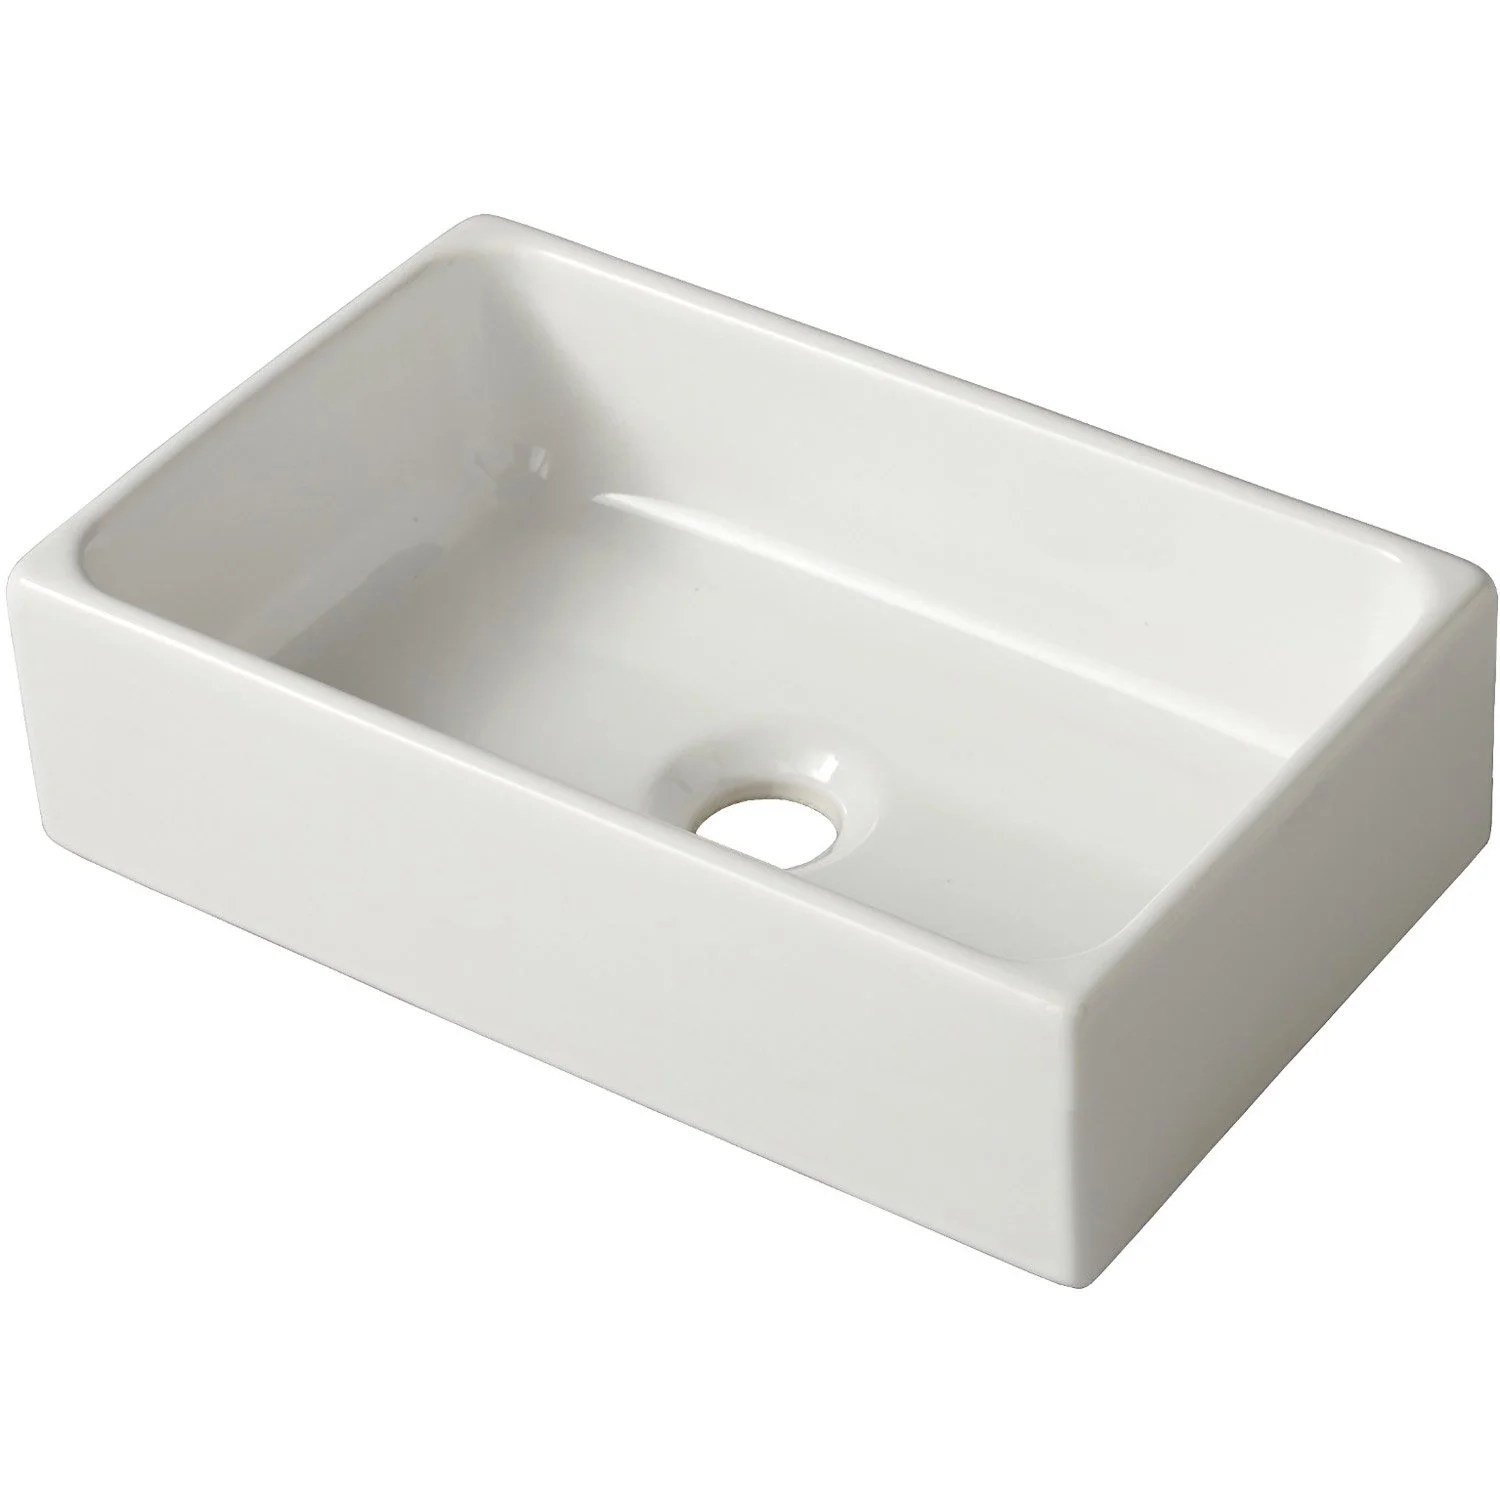 Lave-mains Leroy Merlin Lave Mains Céramique Rectangle Blanc L 41 X P 25 Cm Linea